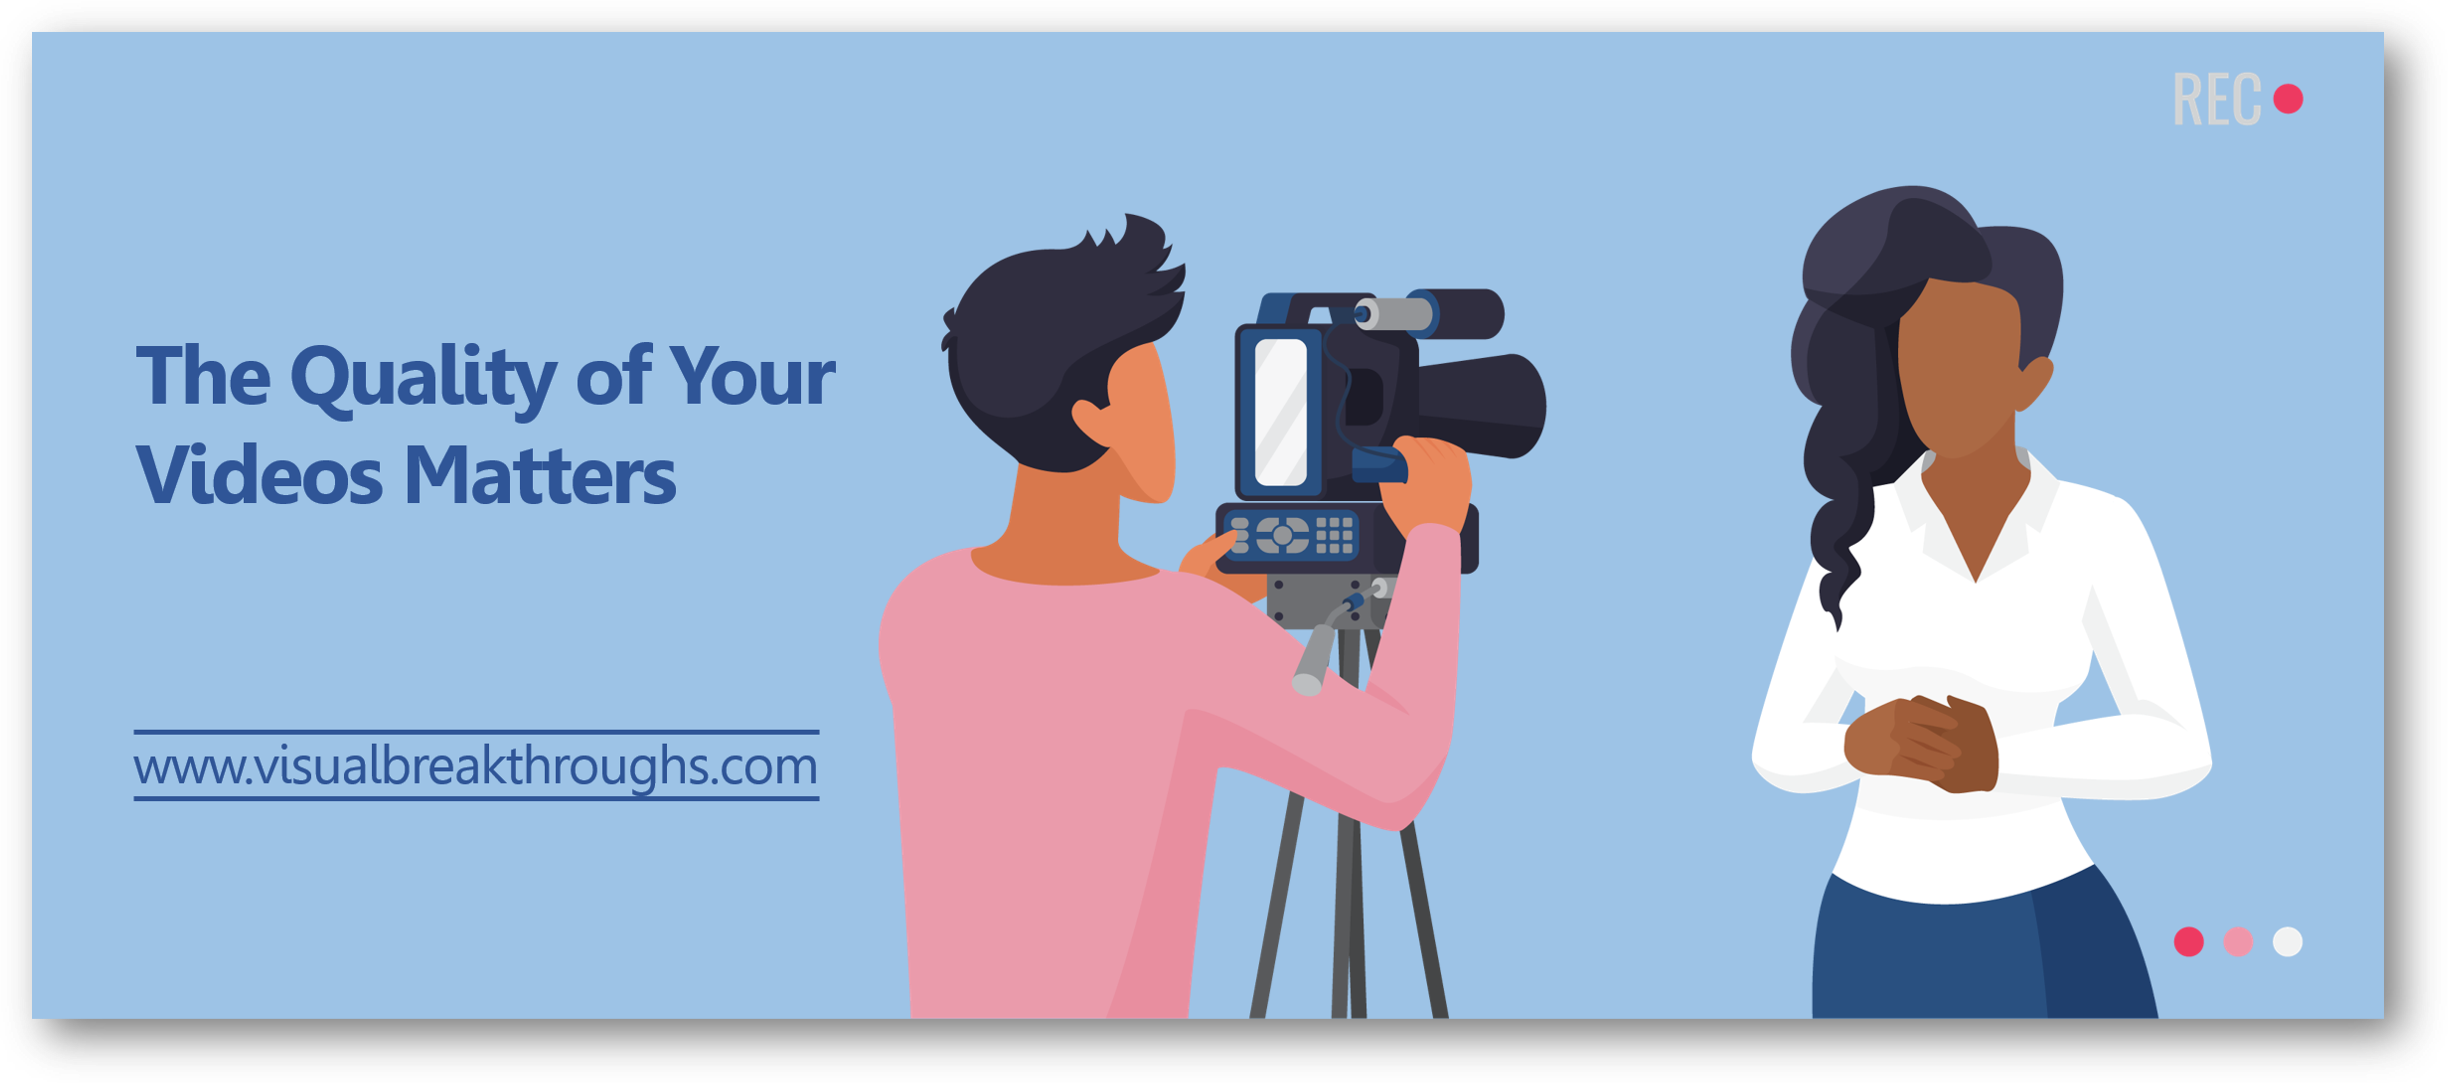 The Quality of Your Videos Matters - www.visualbreakthroughs.com